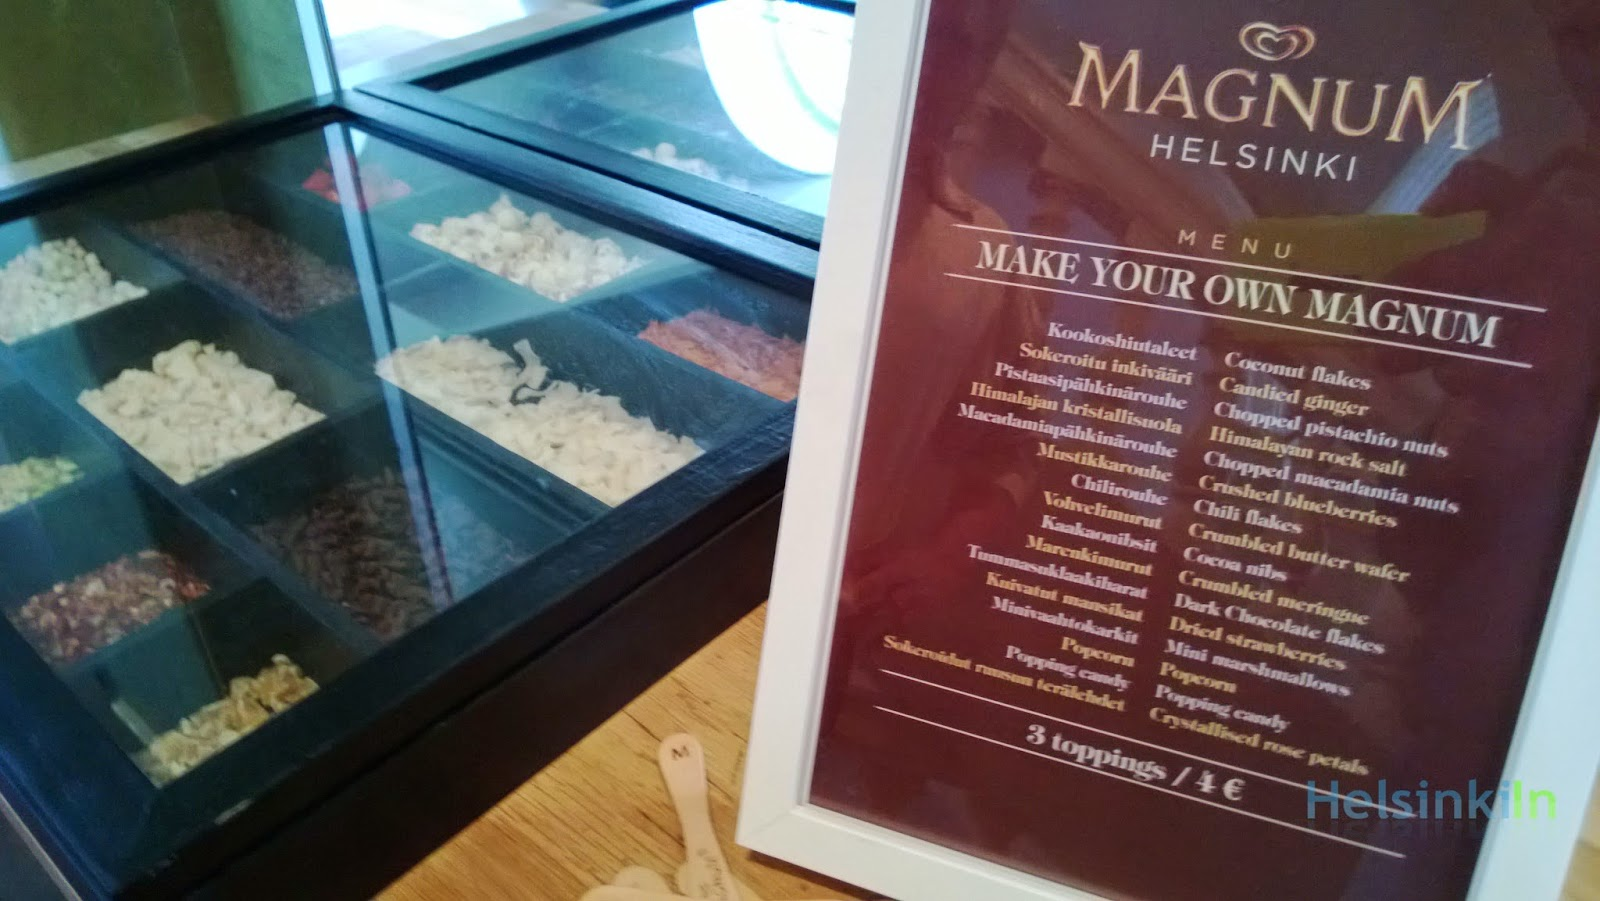 Make your own Magnum in Helsinki